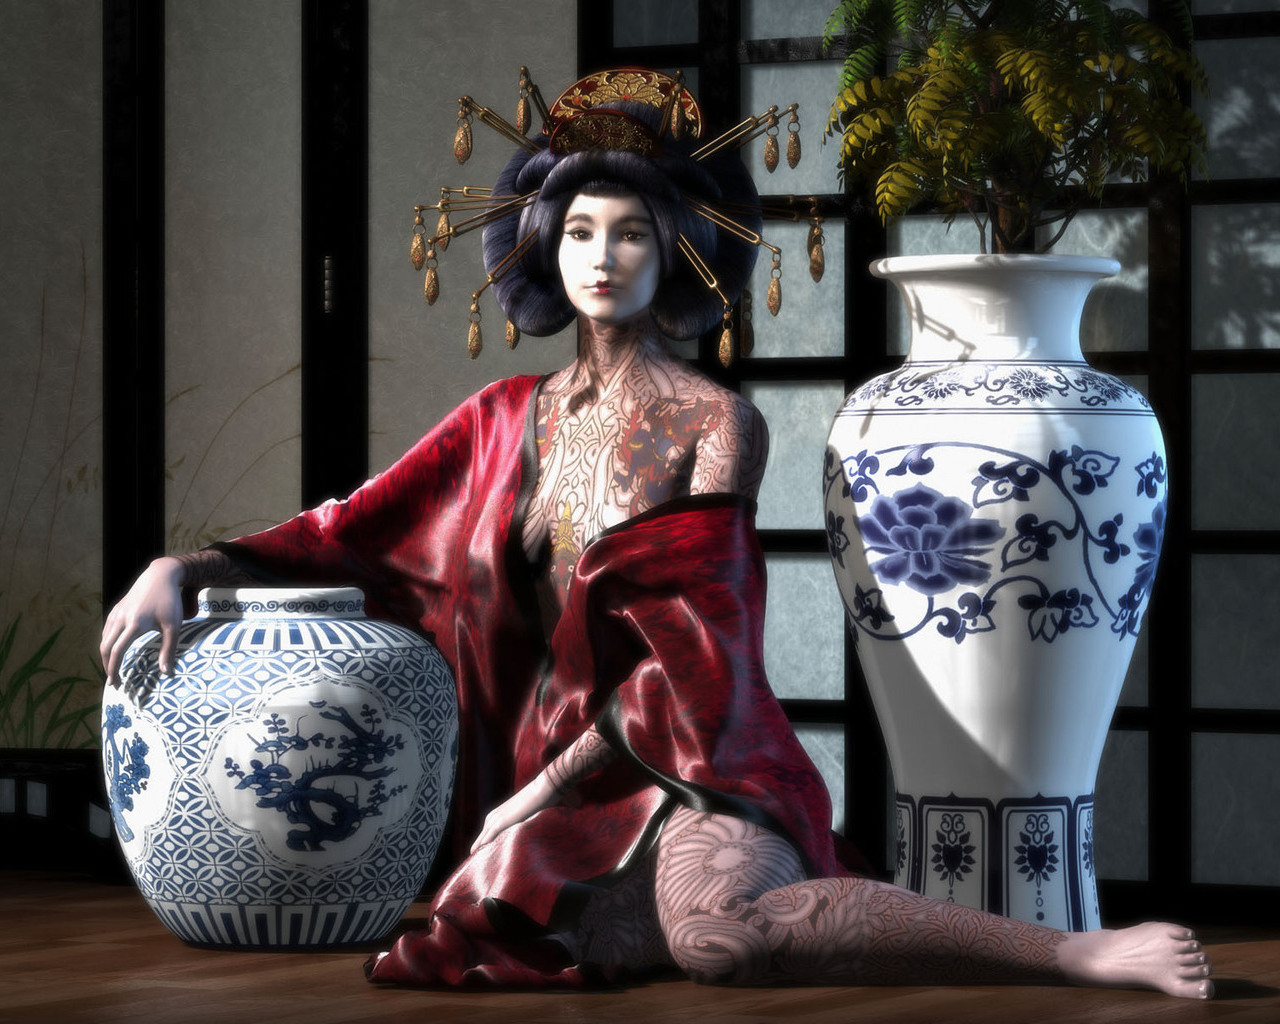 Japanese wallpapers Asian women wallpapers 1280x1024